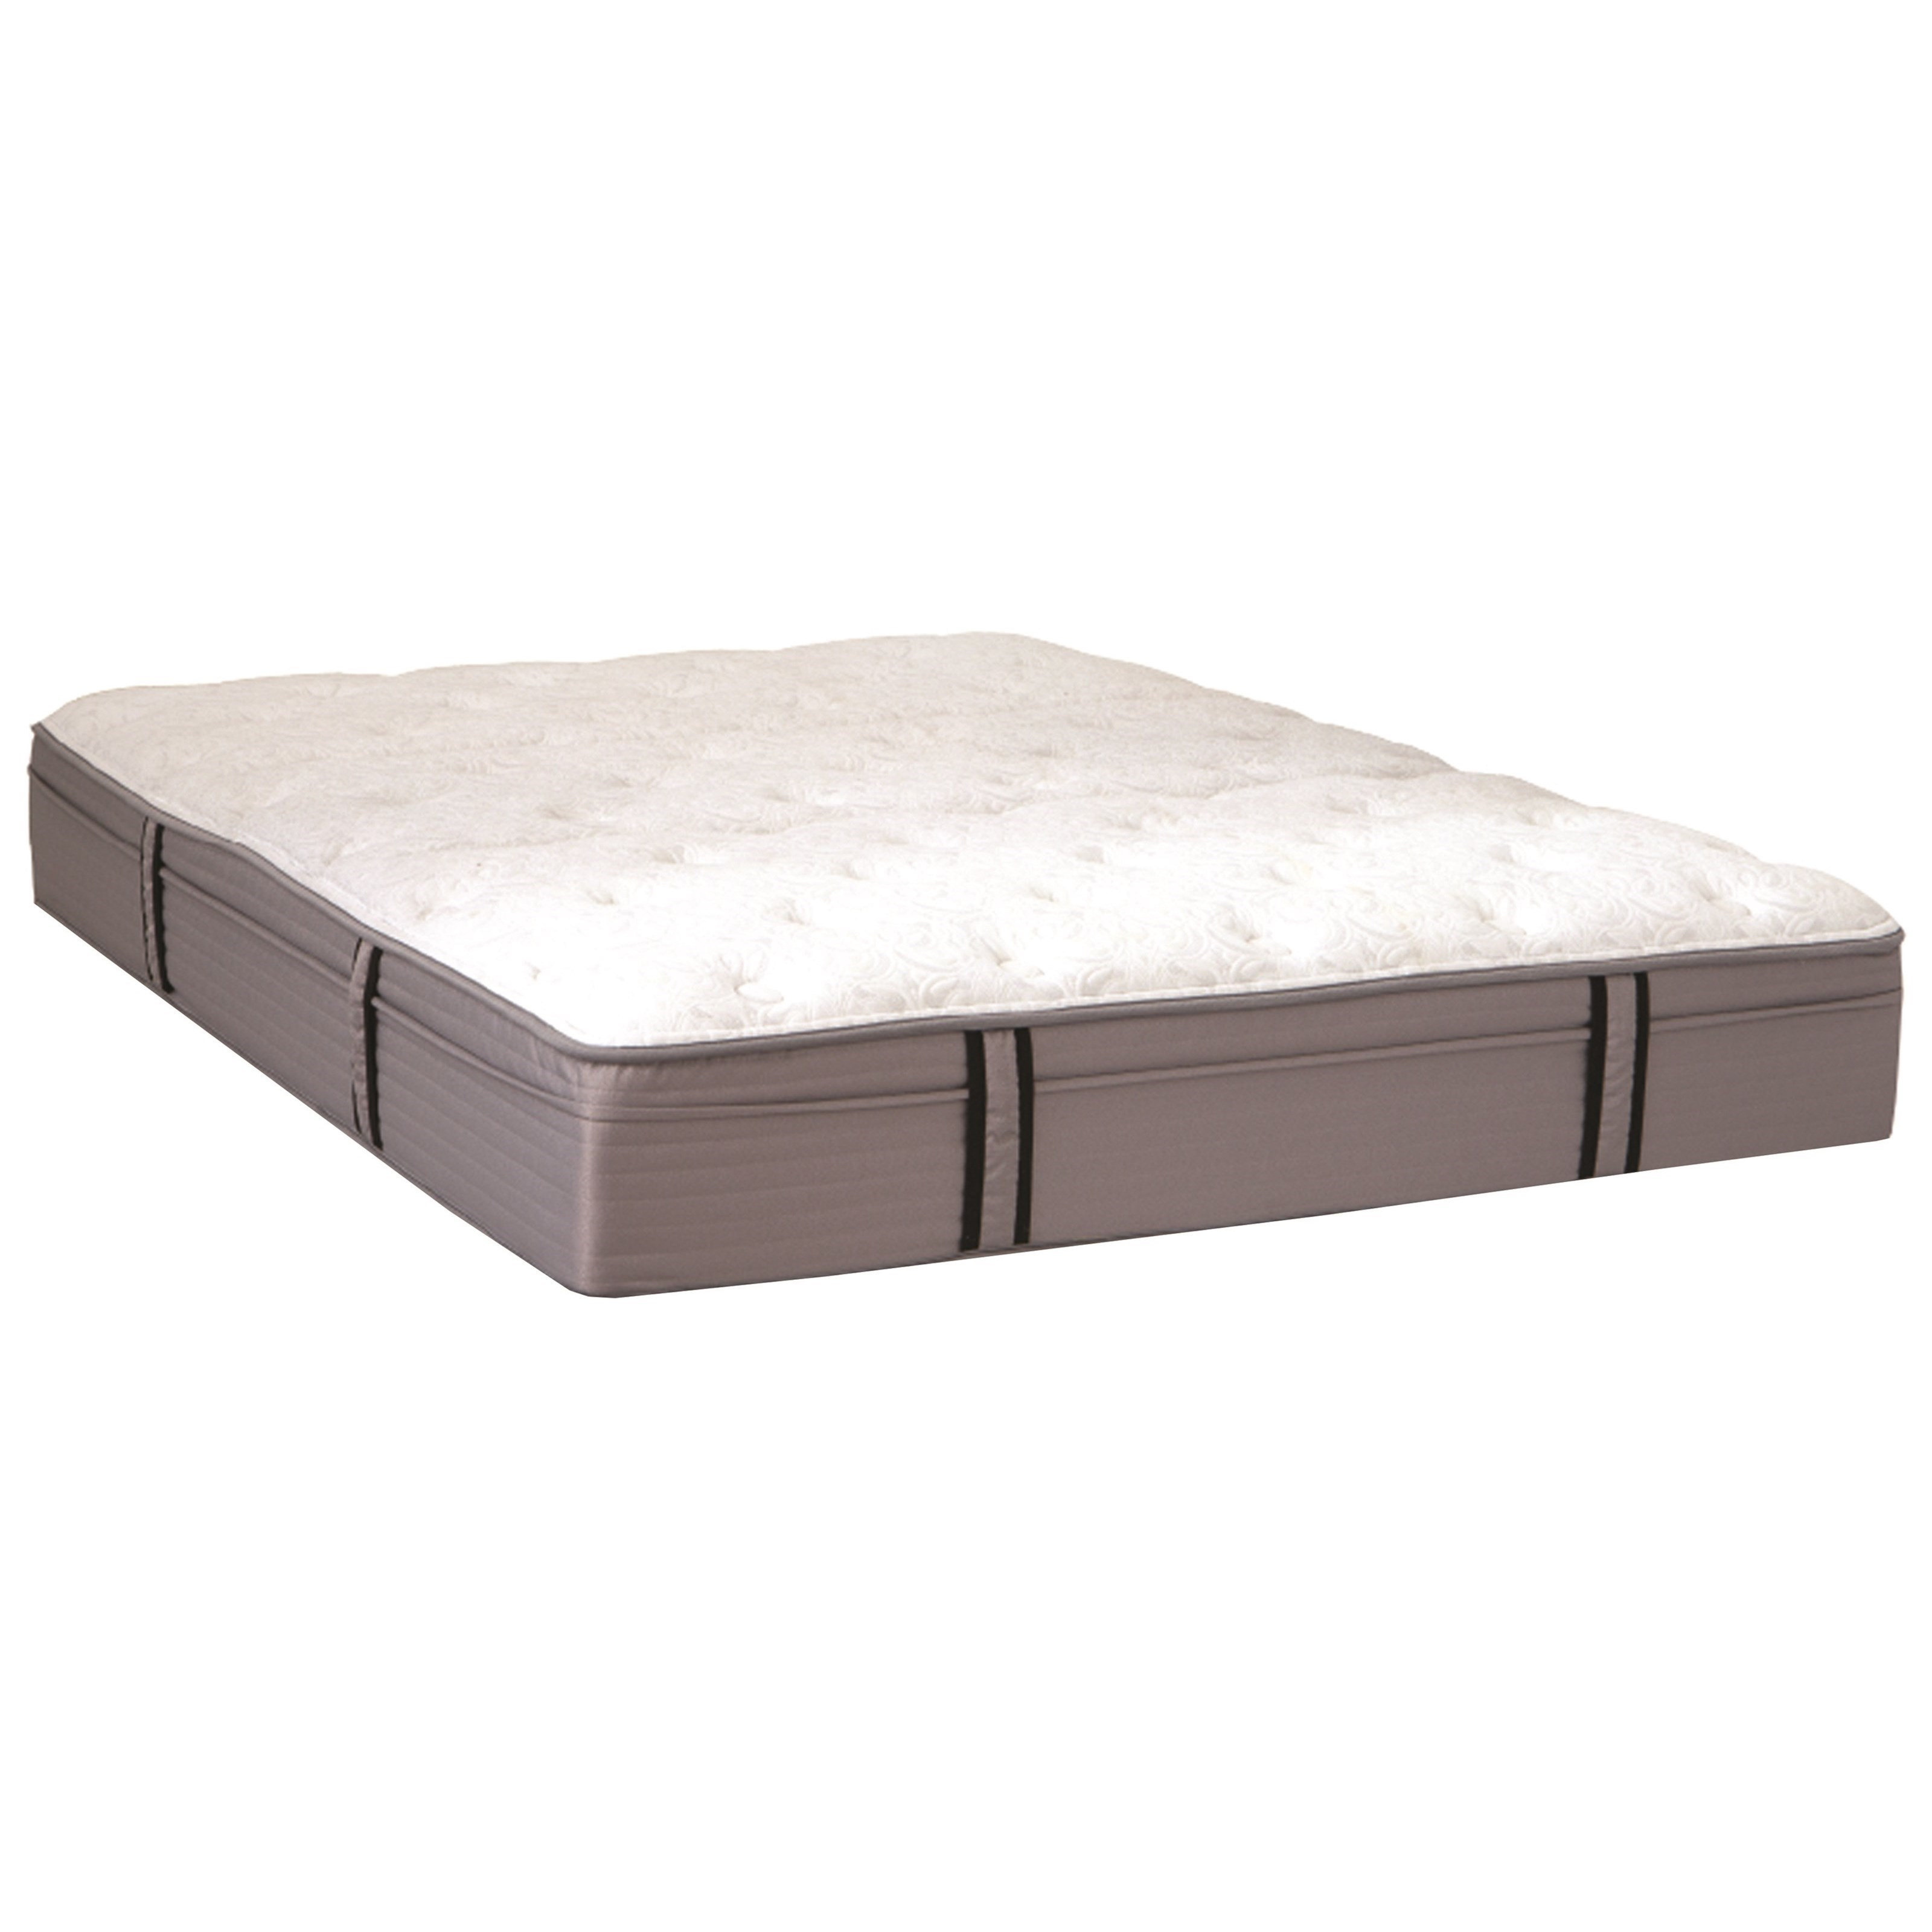 Twin XL Pillow Top Pocketed Coil Mattress